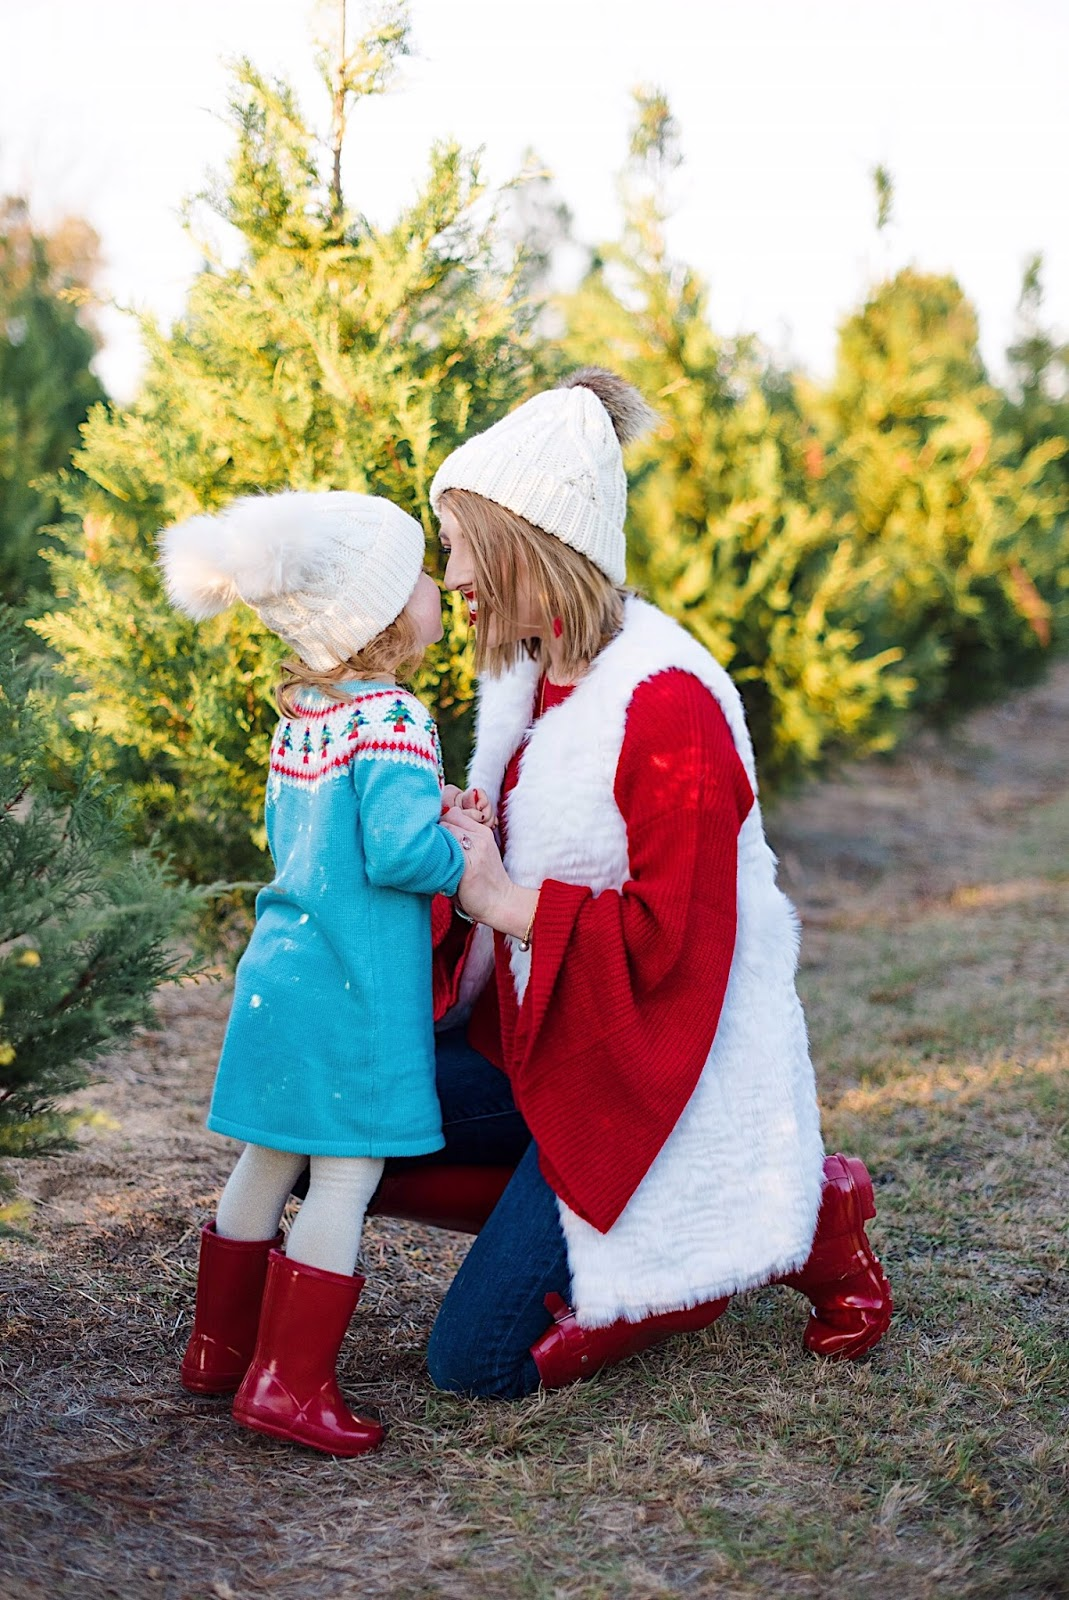 Christmas Tree Farm - Something Delightful Blog